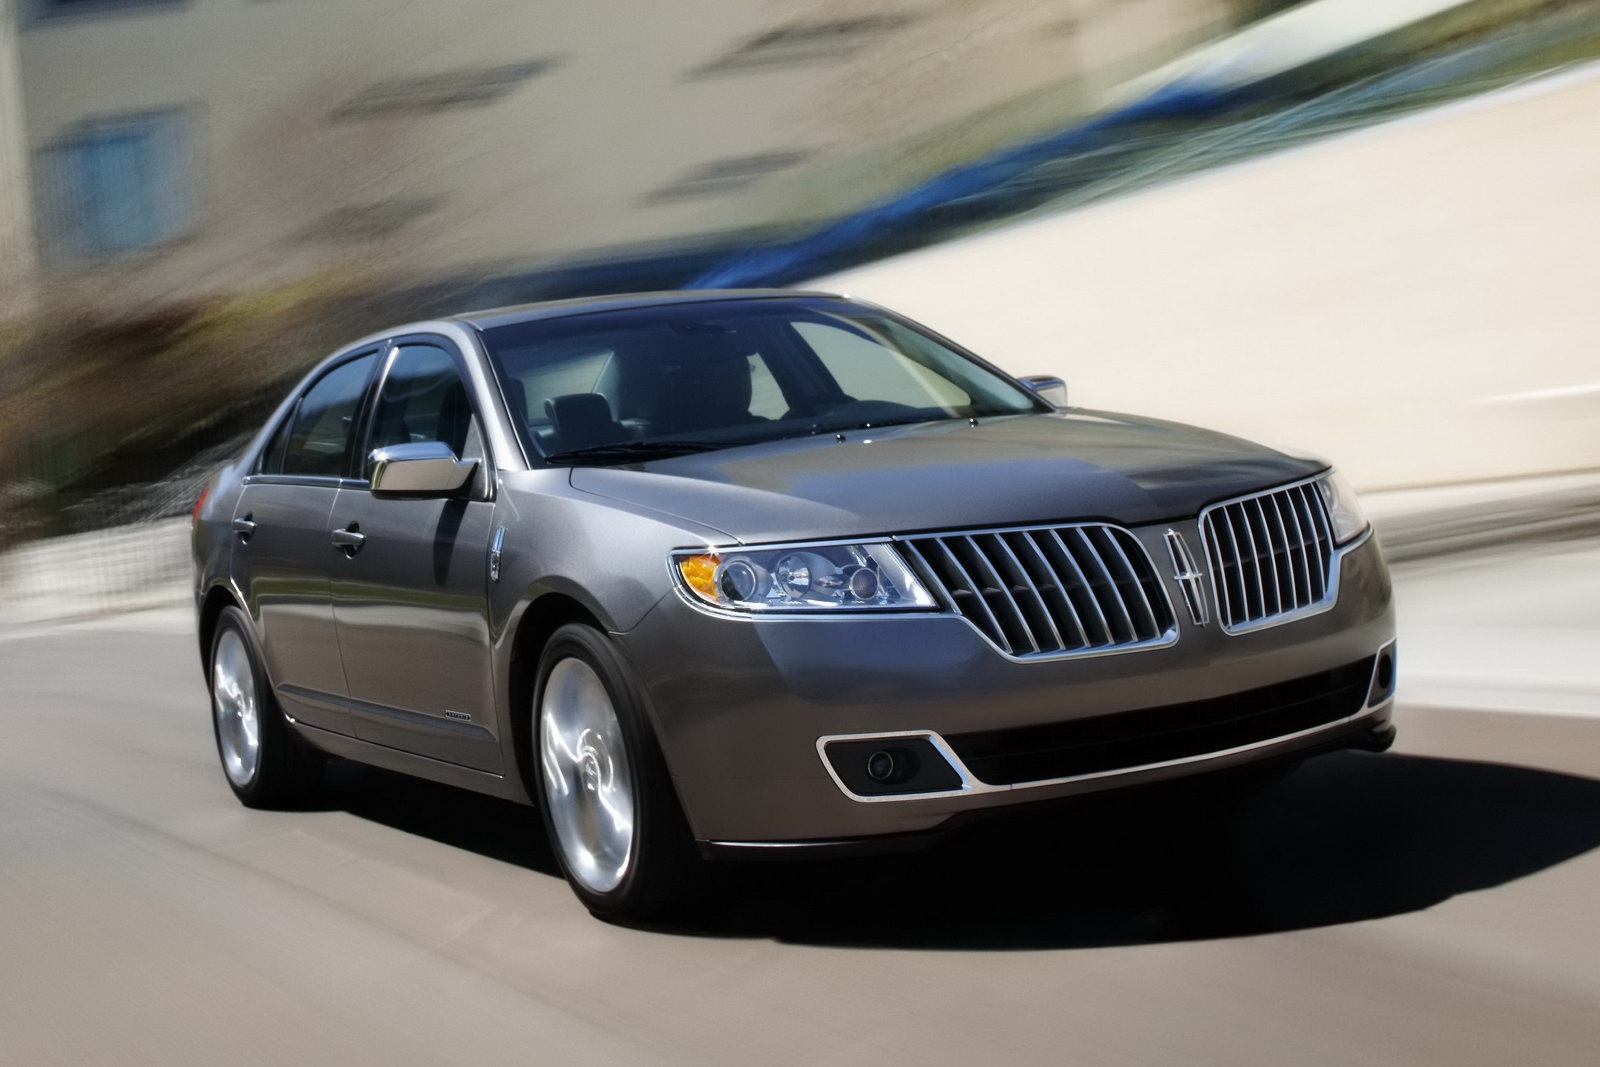 2011 Lincoln Mkz #2